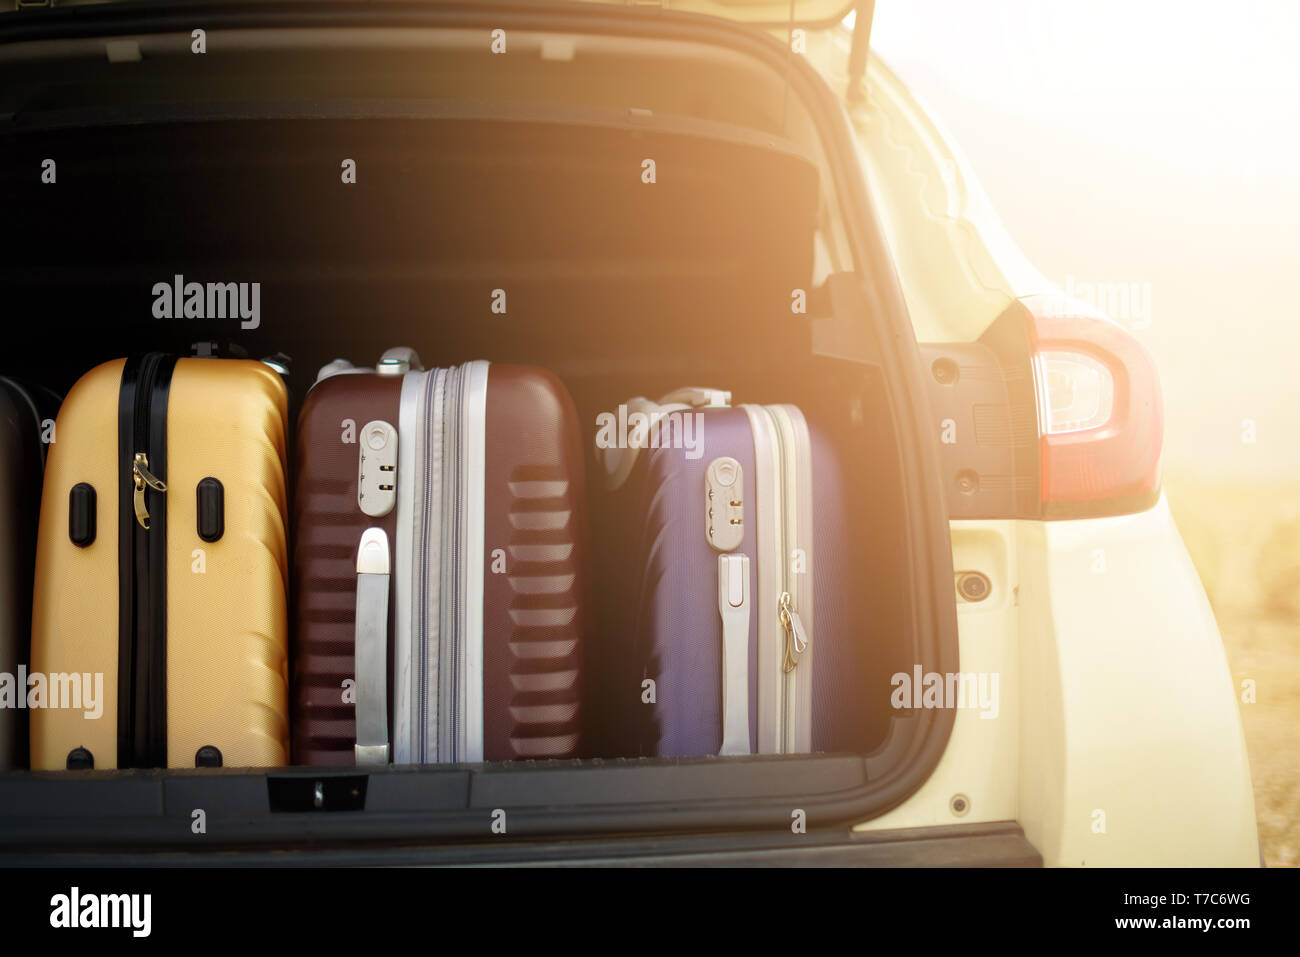 Opened car trunk full of suitcases in sunlight effect. Travel, adventure concept. Packed baggages for summer holidays - Stock Image